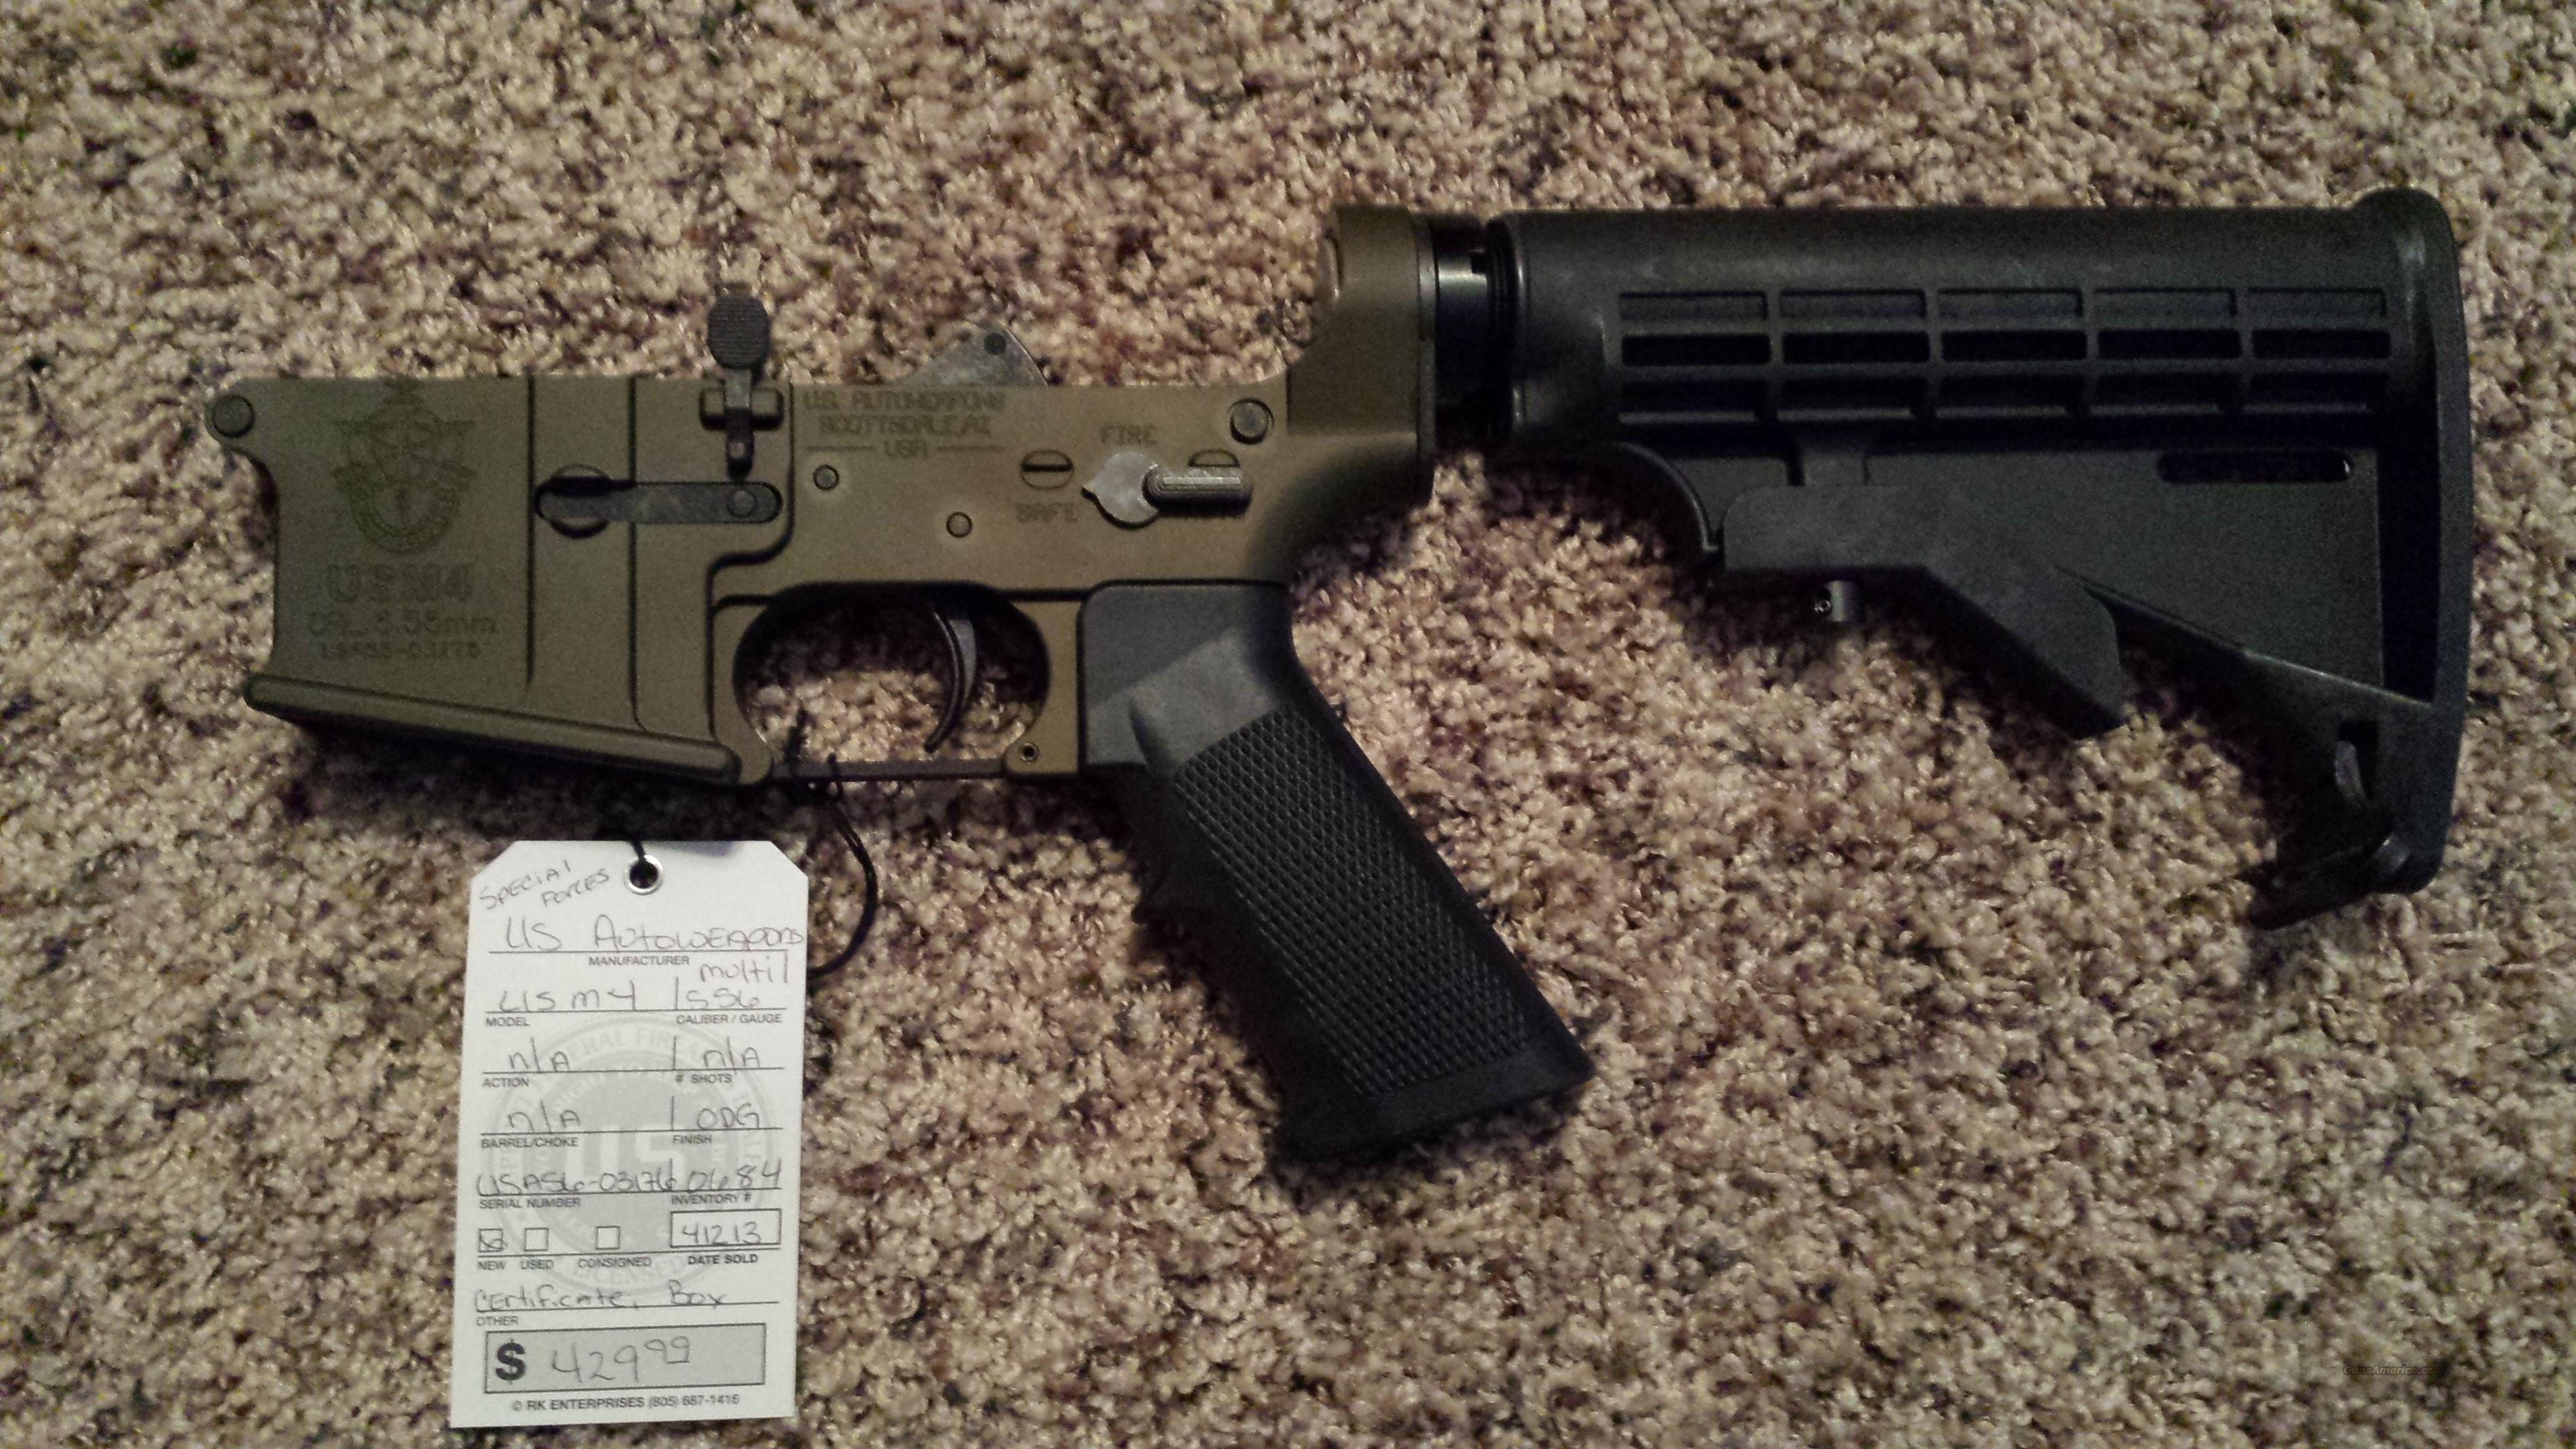 UA SPECIAL FORCES COMPLETE OD GREEN ODG 556 Lower  Guns > Rifles > AR-15 Rifles - Small Manufacturers > Lower Only